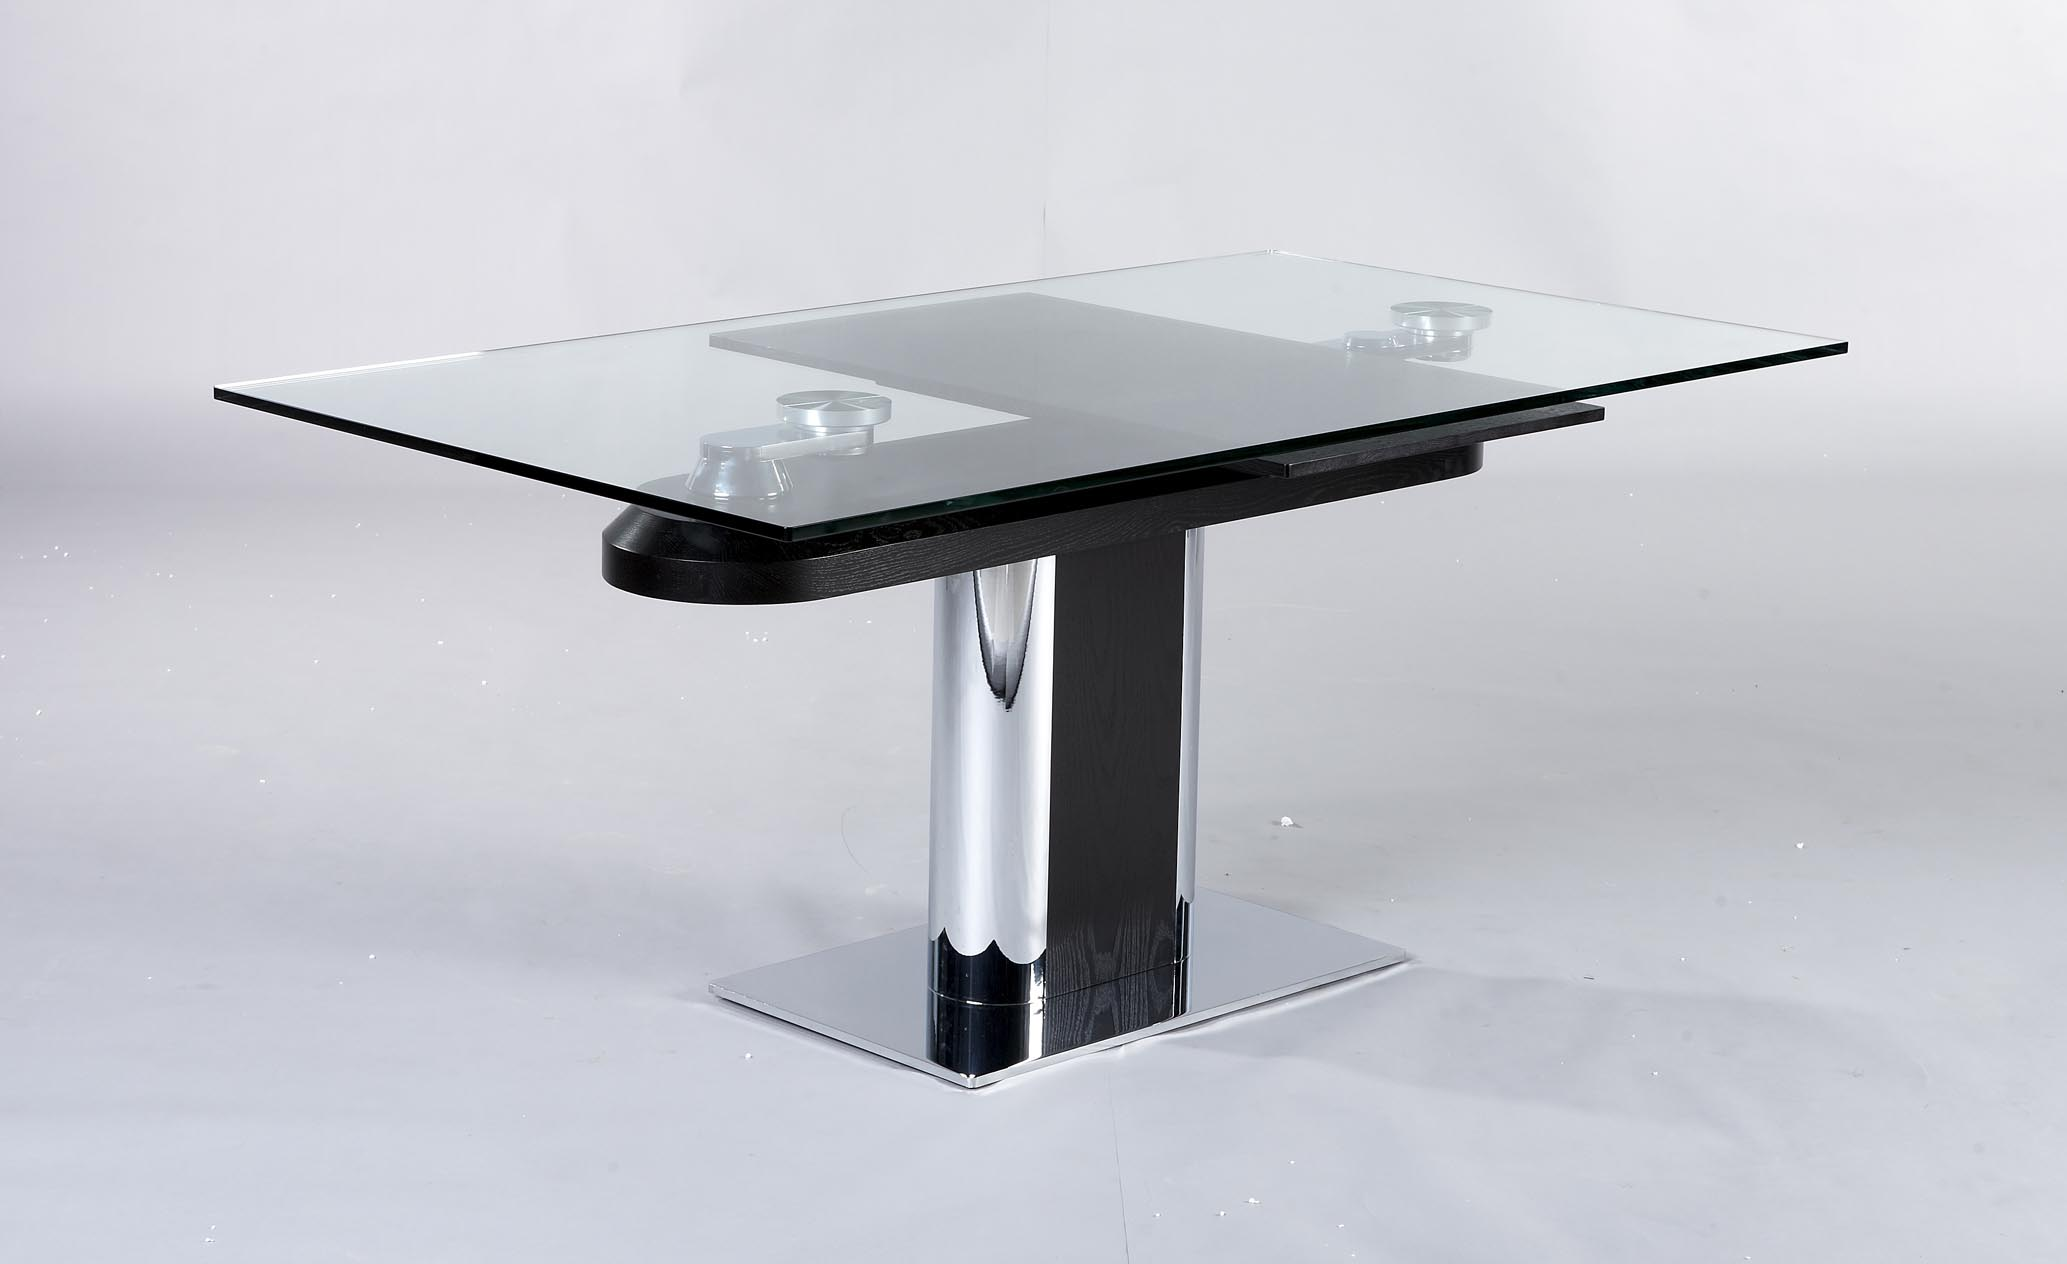 Table de salle a manger moderne en verre for Table salle a manger extensible design